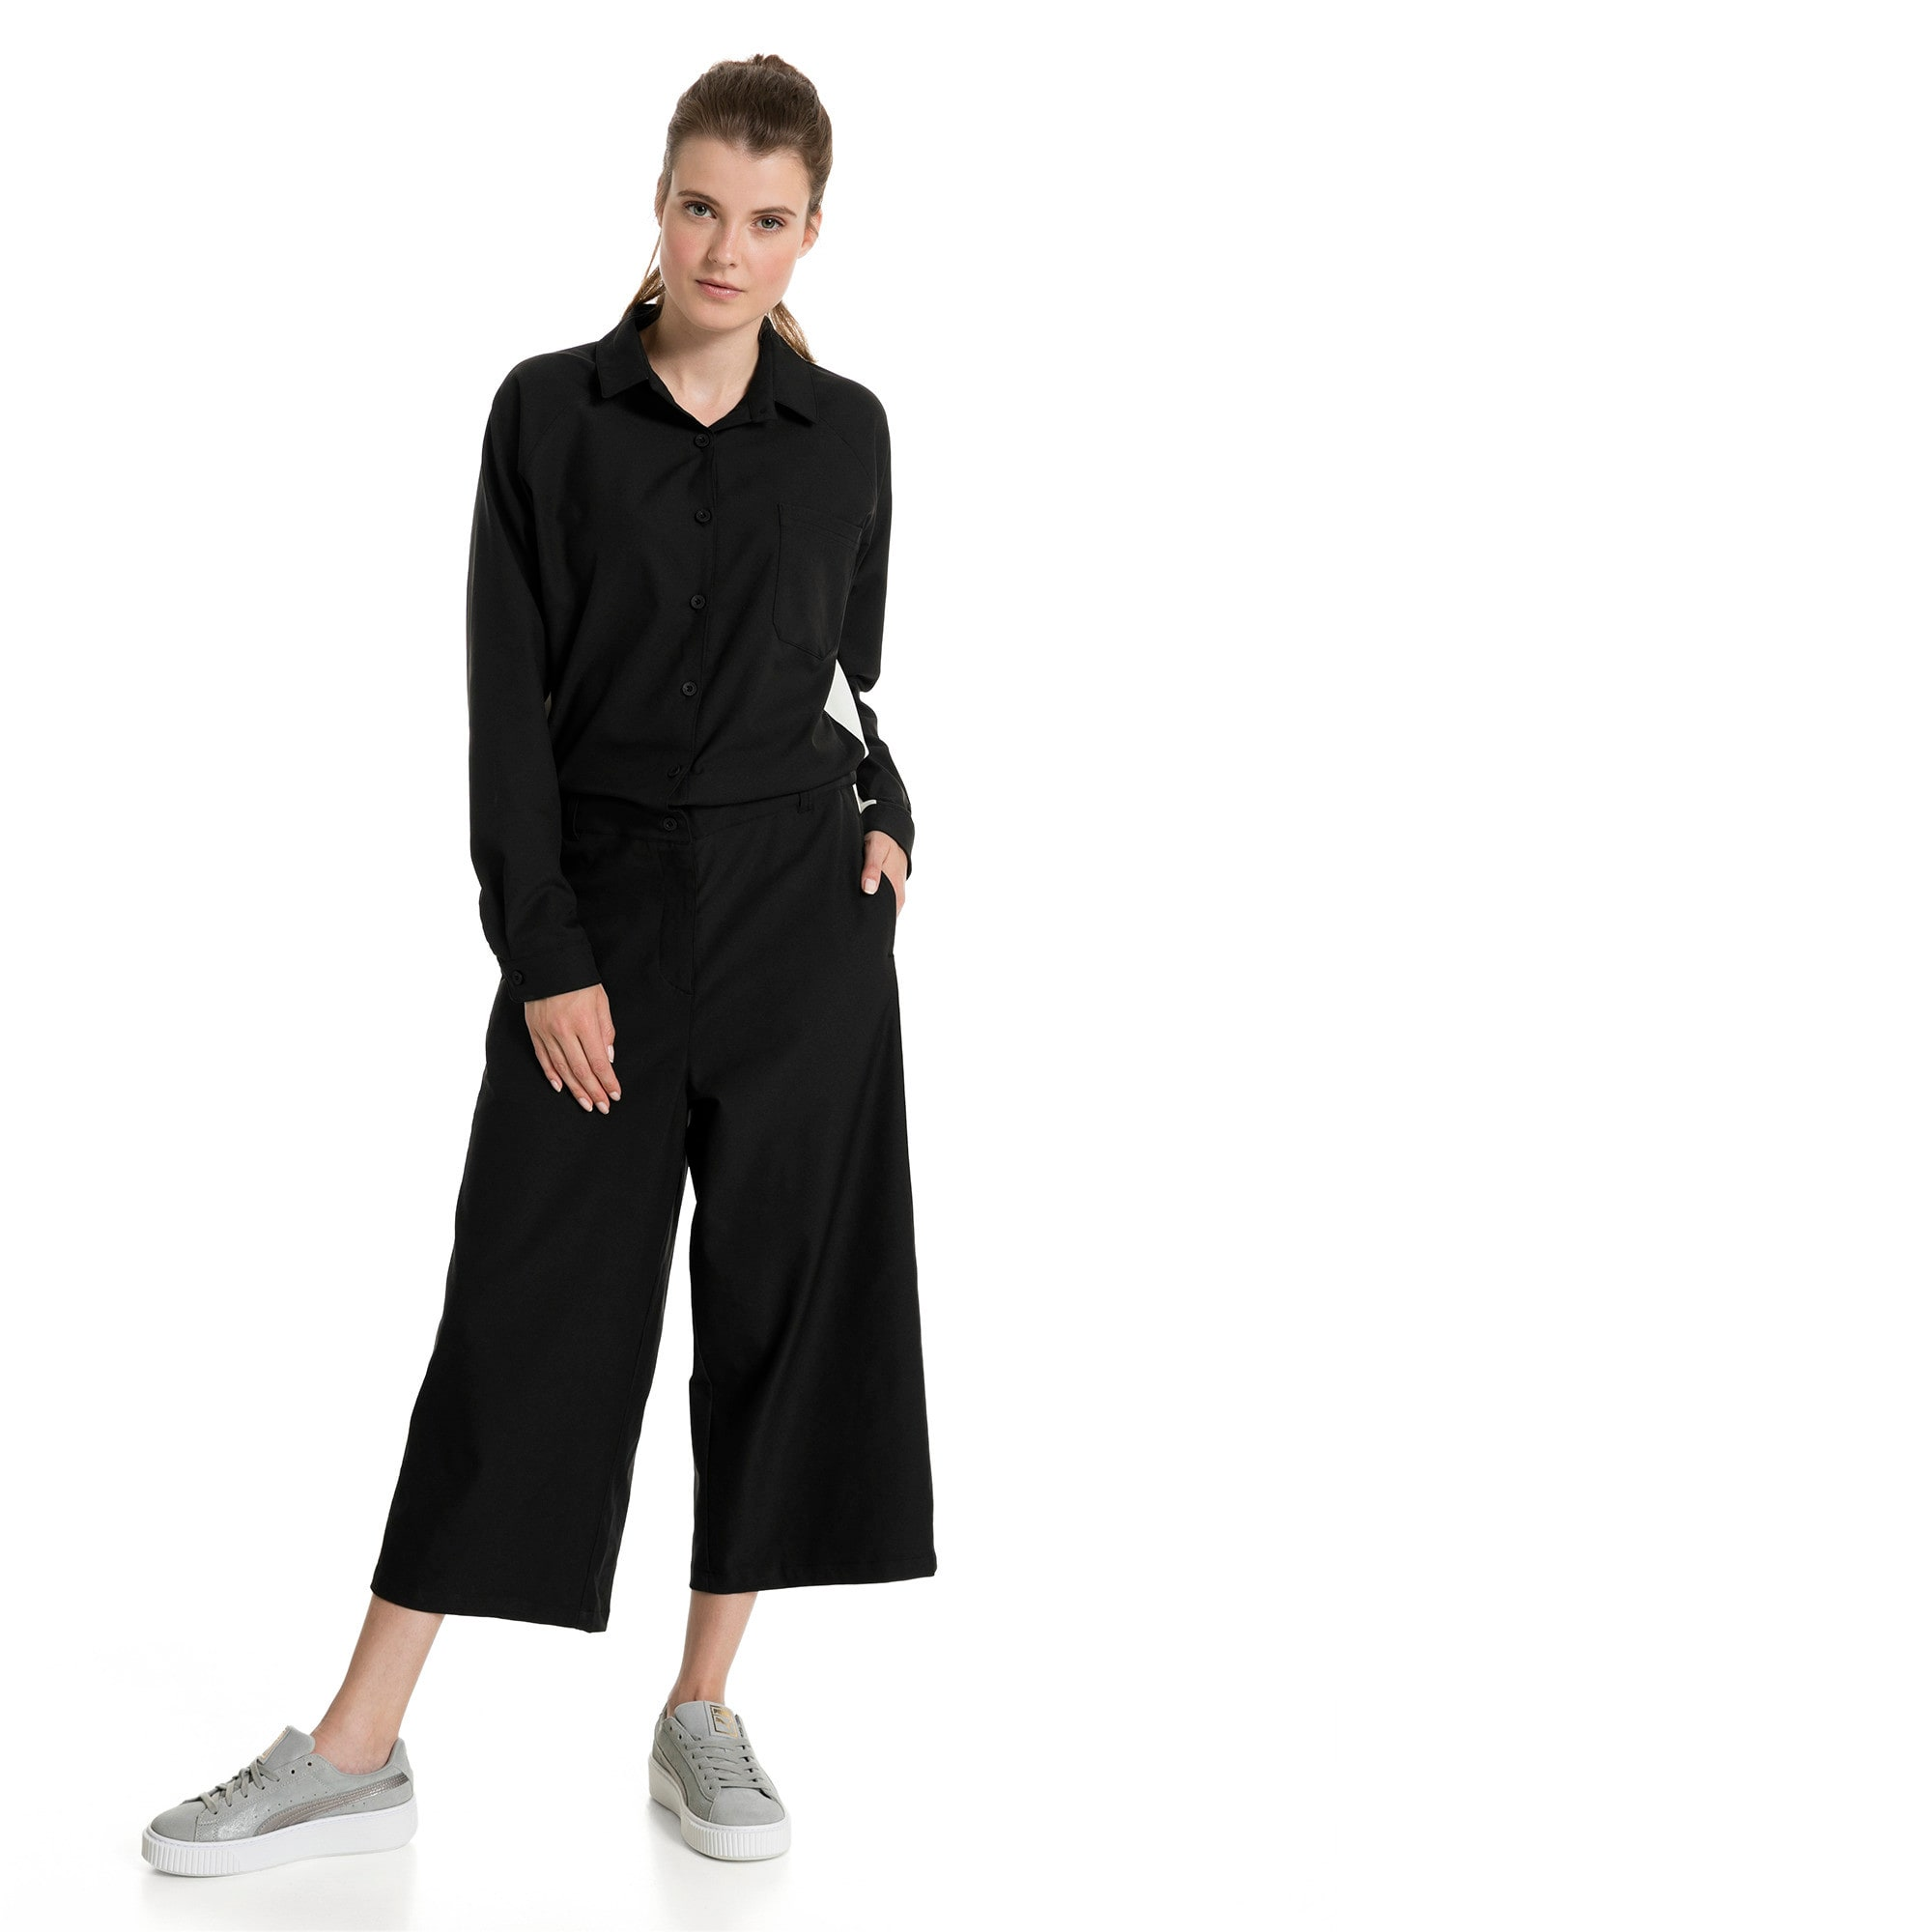 Thumbnail 2 of True Archive Women's Worker Overall, Puma Black, medium-IND